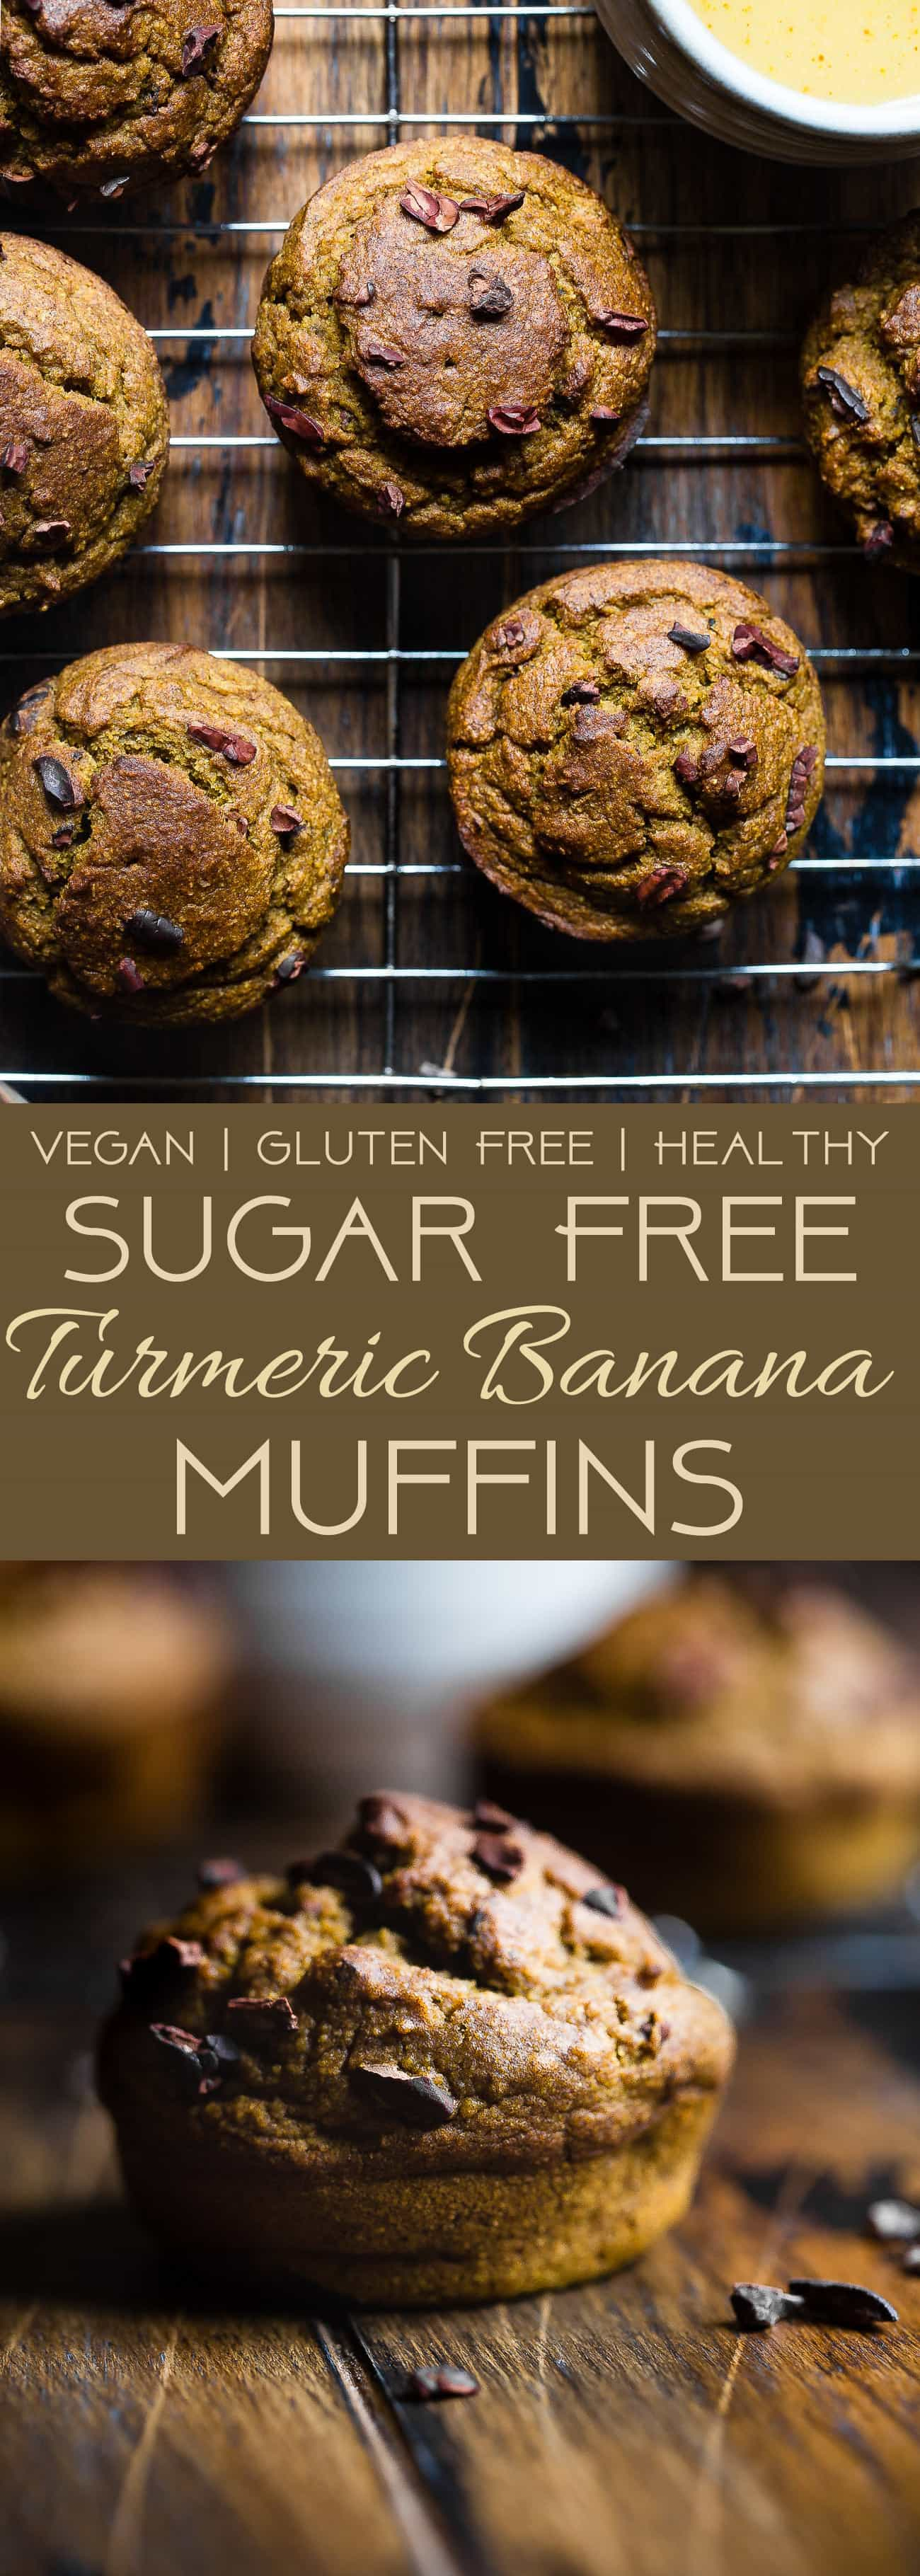 Sugar Free Turmeric Banana Muffins - These anti-inflammatory, healthy banana muffins are loaded with crunchy cocoa nibs! Gluten free, vegan friendly, low fat and only 180 calories! Perfect for a quick breakfast! | Foodfaithfitness.com | @FoodFaitFit